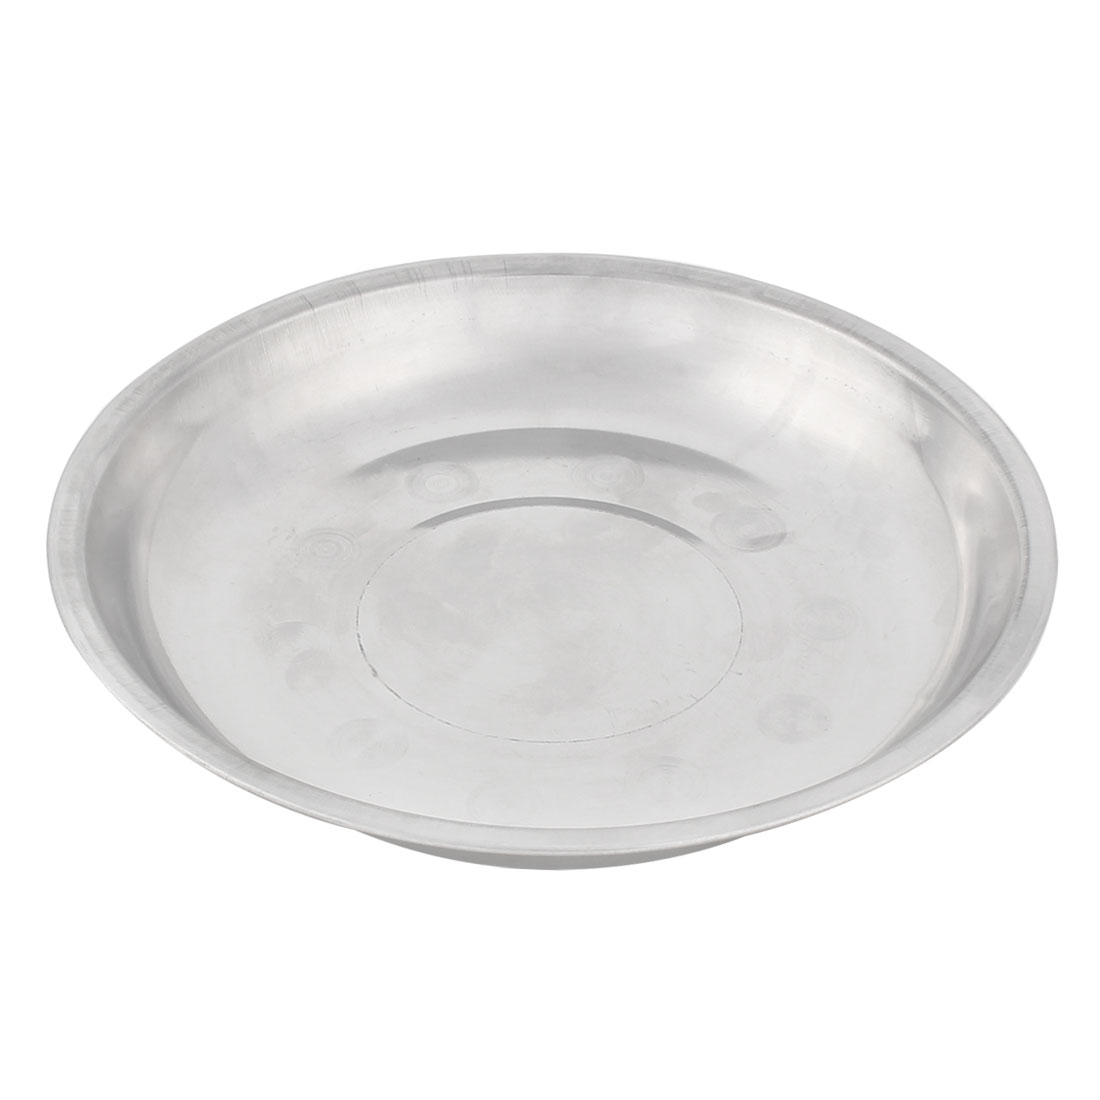 Household Kitchen Stainless Steel Round Shaped Dish Plate Silver Tone 19cm Diameter